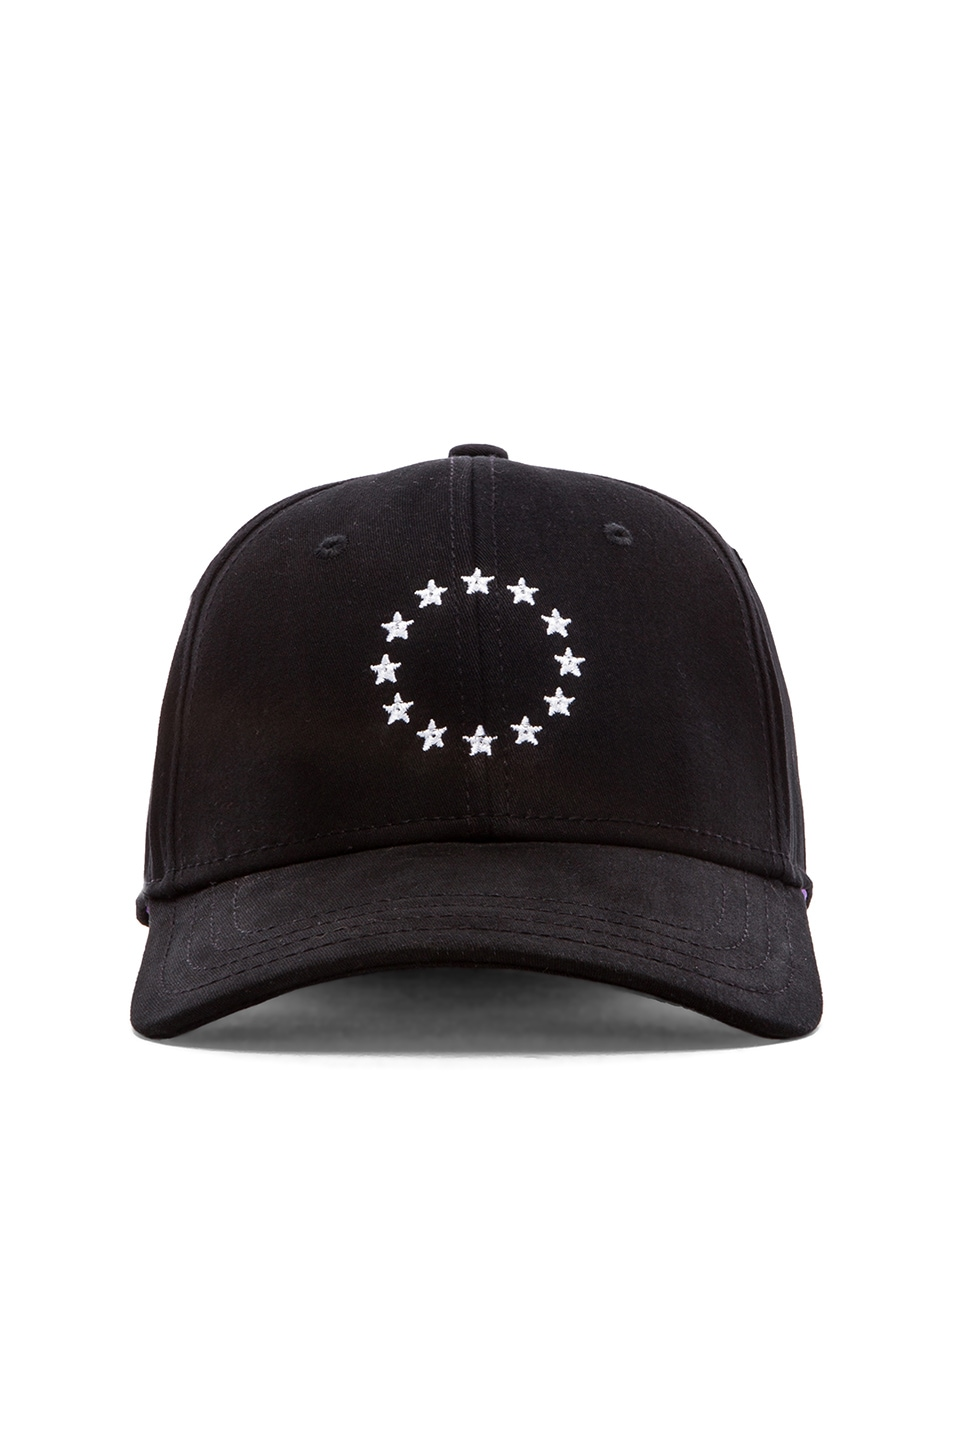 Gents Co. Collective Cap in Black White